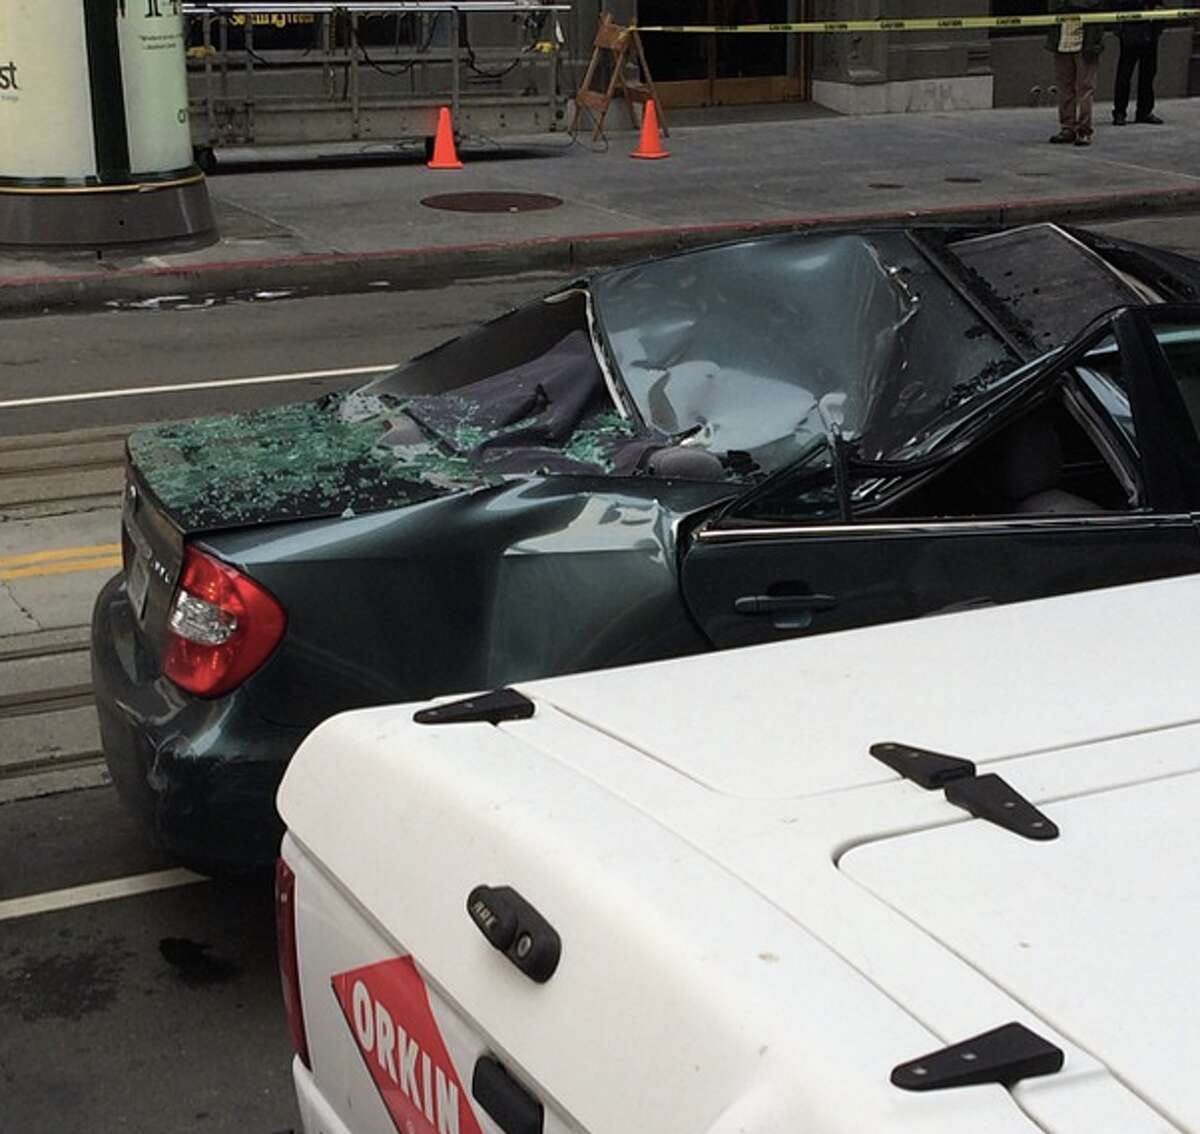 Instagram userradiopadraic posted this photo showing a car that a worker landed on after falling off a building near Montgomery and California streets in San Francisco on on Friday, November 21, 2014.